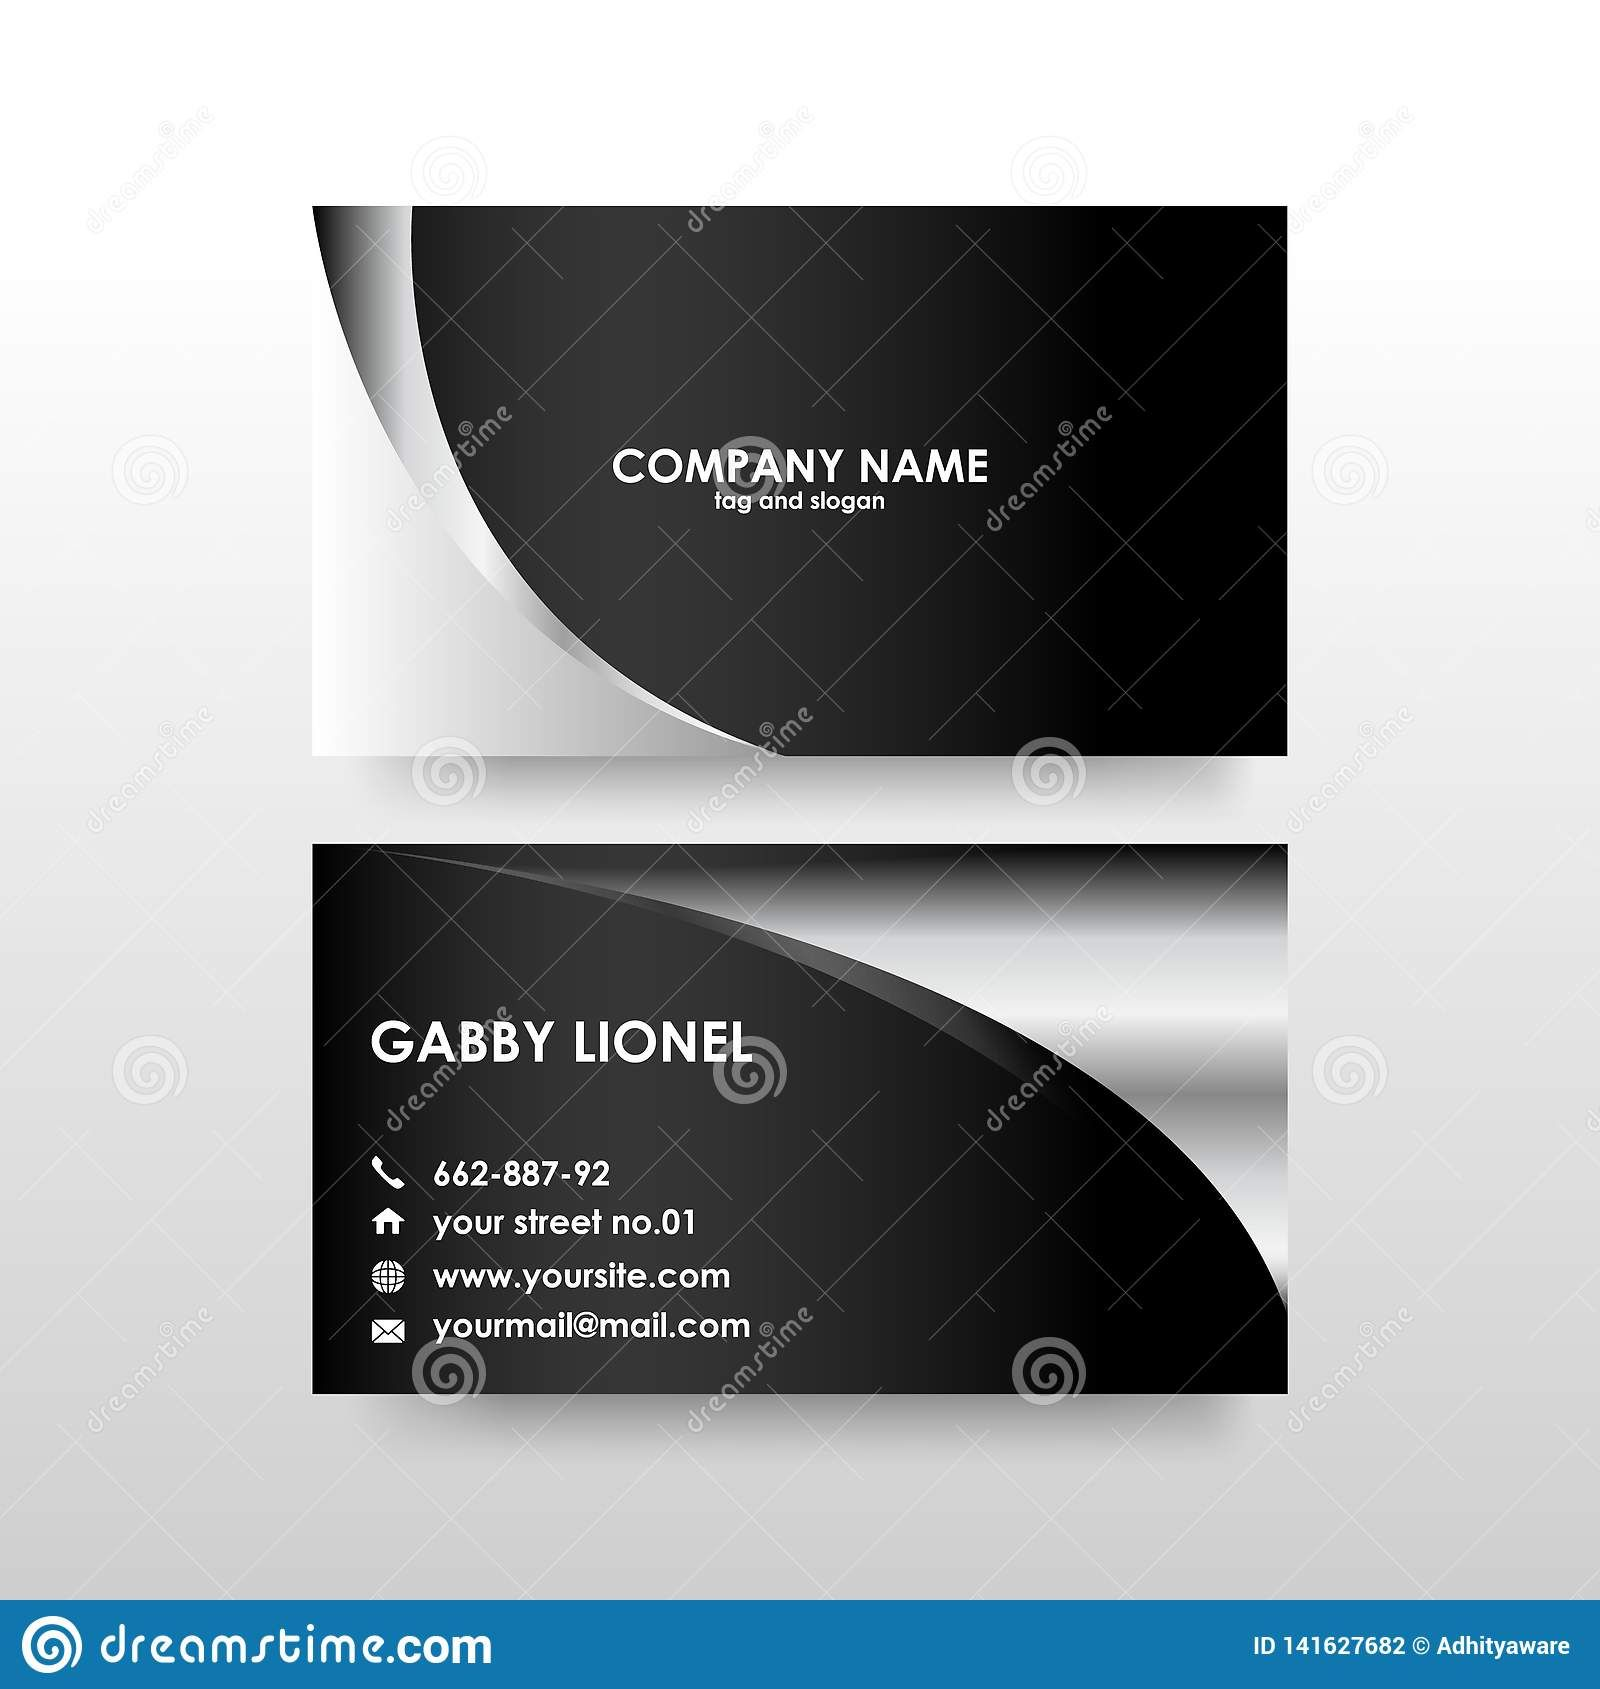 The Cool 014 Double Sided Business Cards Templates Creative Card Intended For 2 Illustration Business Cards Double Sided Business Cards Business Card Template